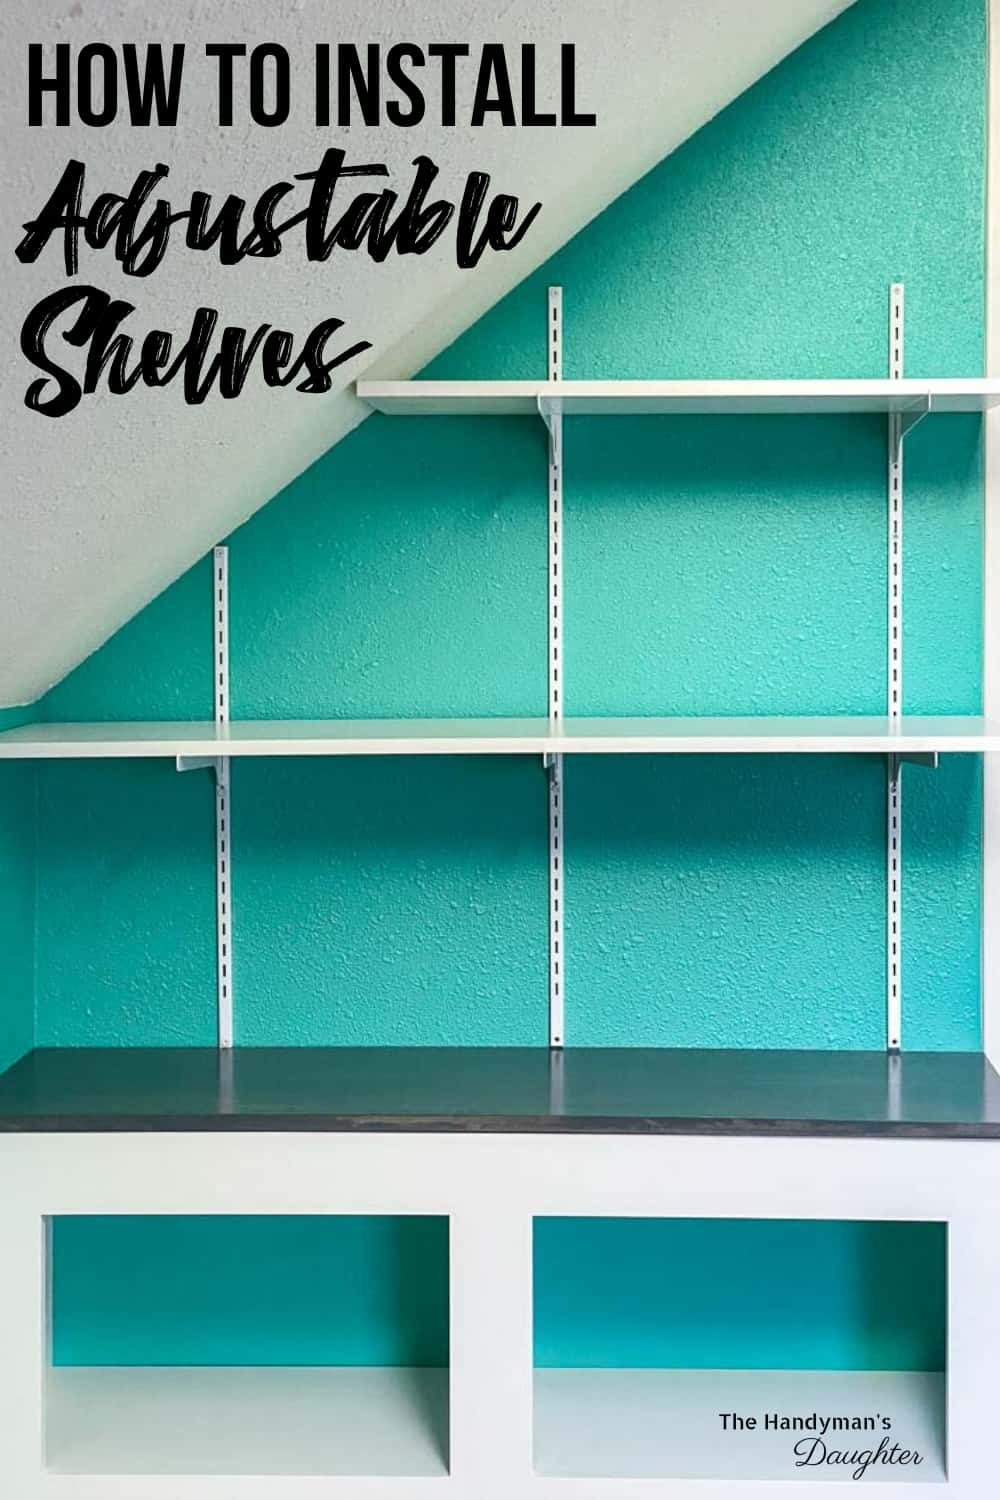 How to Install Adjustable Wall Mounted Shelving